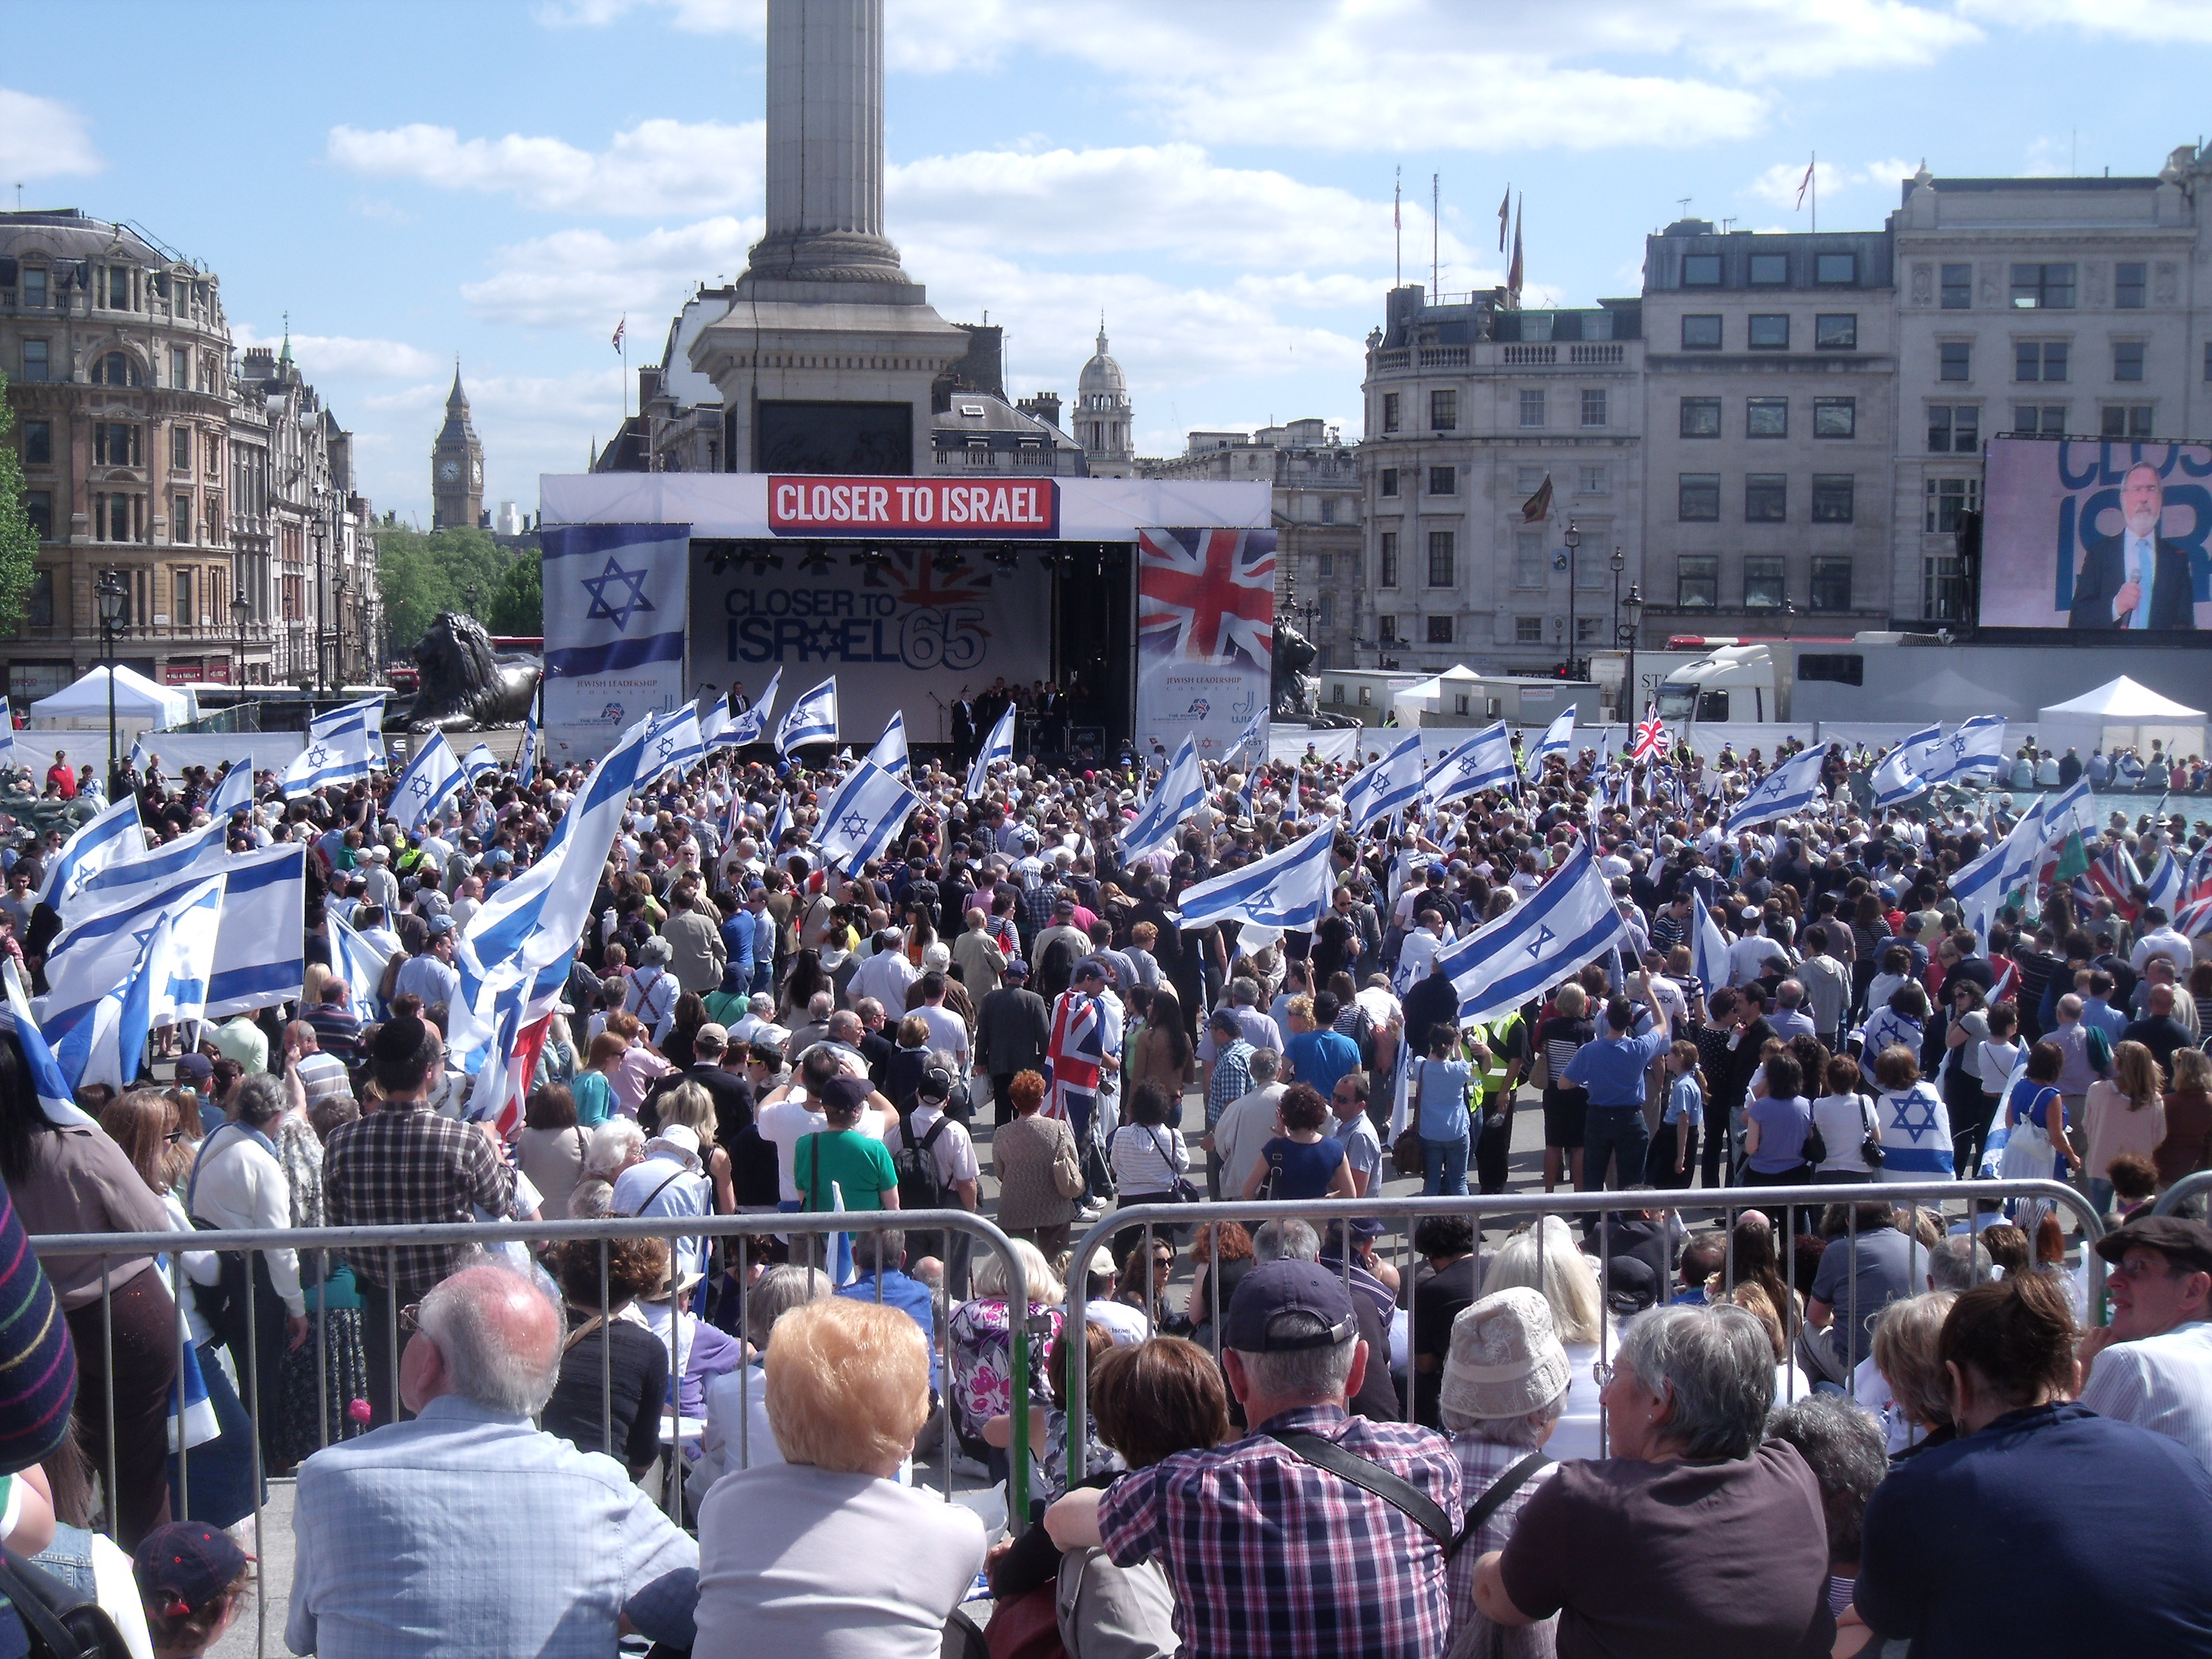 A packed and sunny Trafalgar Square for CTI65 listening to the Chief Rabbi.